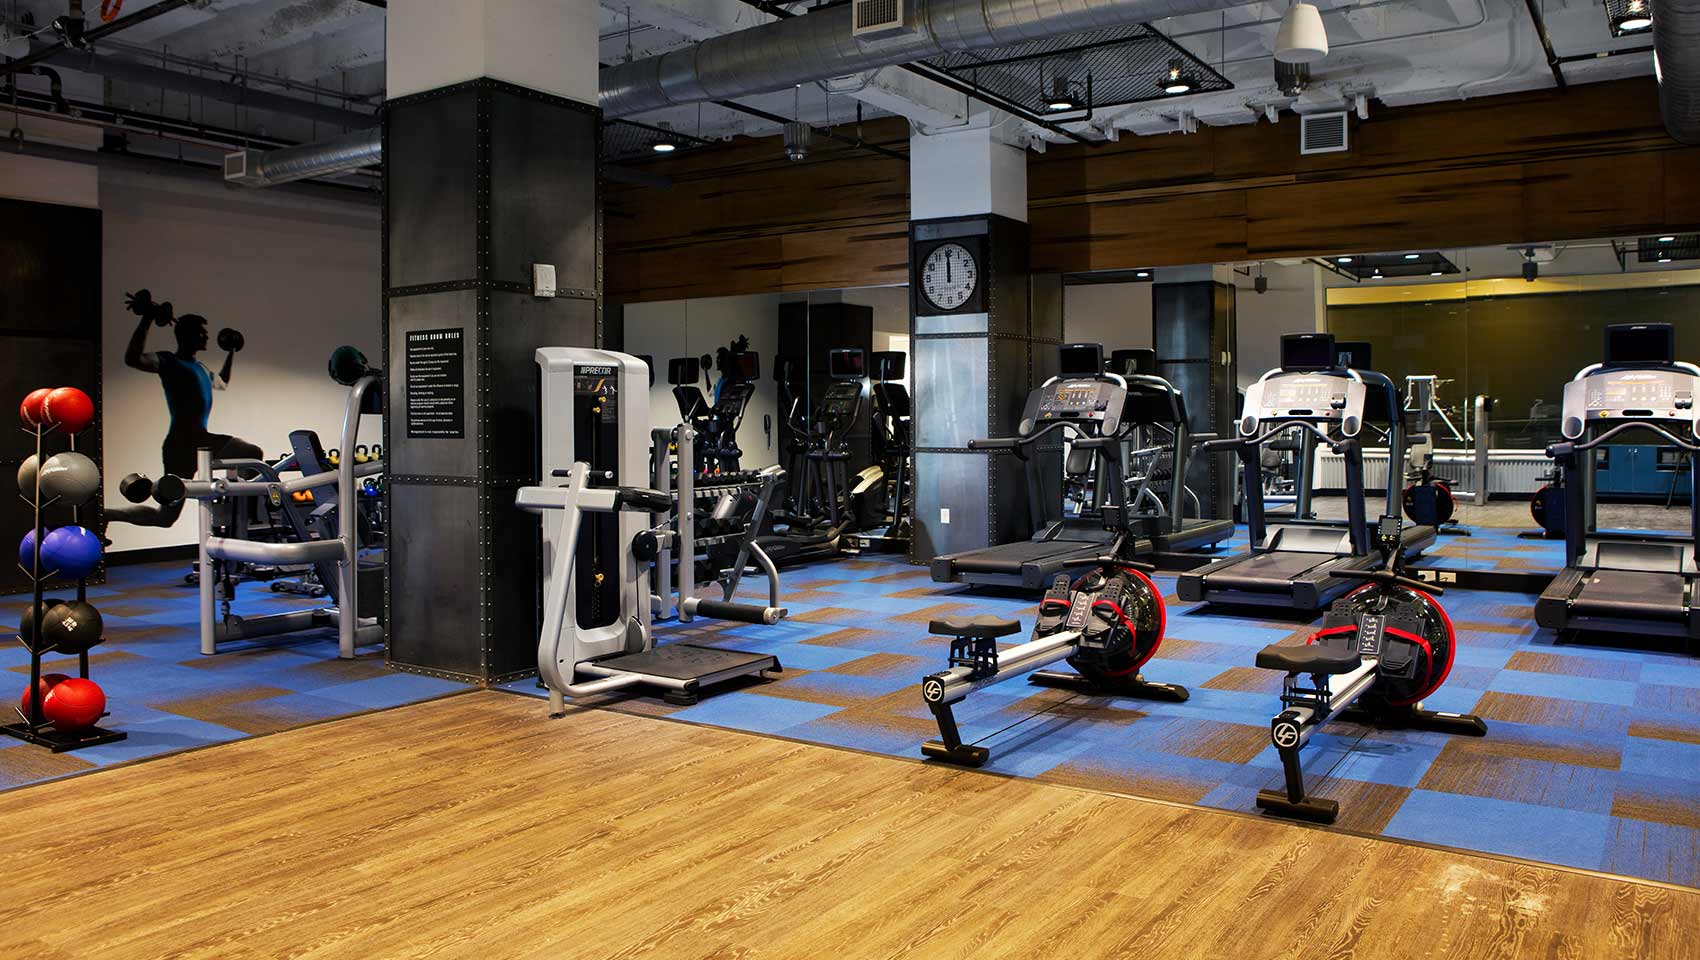 Fitness center kimpton cardinal hotel a winston salem hotel for Equipement hotel